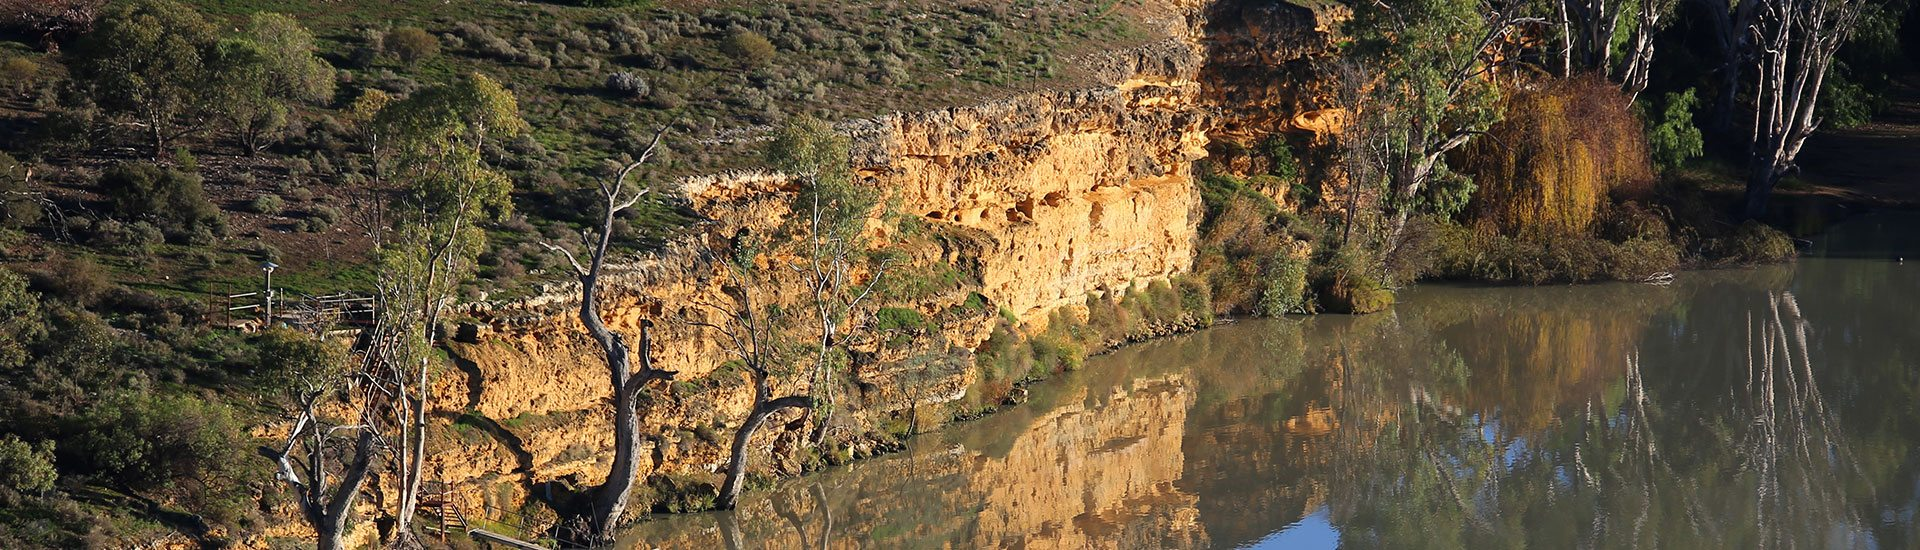 balloon-adventures-flights-over-the-murray-balloon-ride-scenic-6